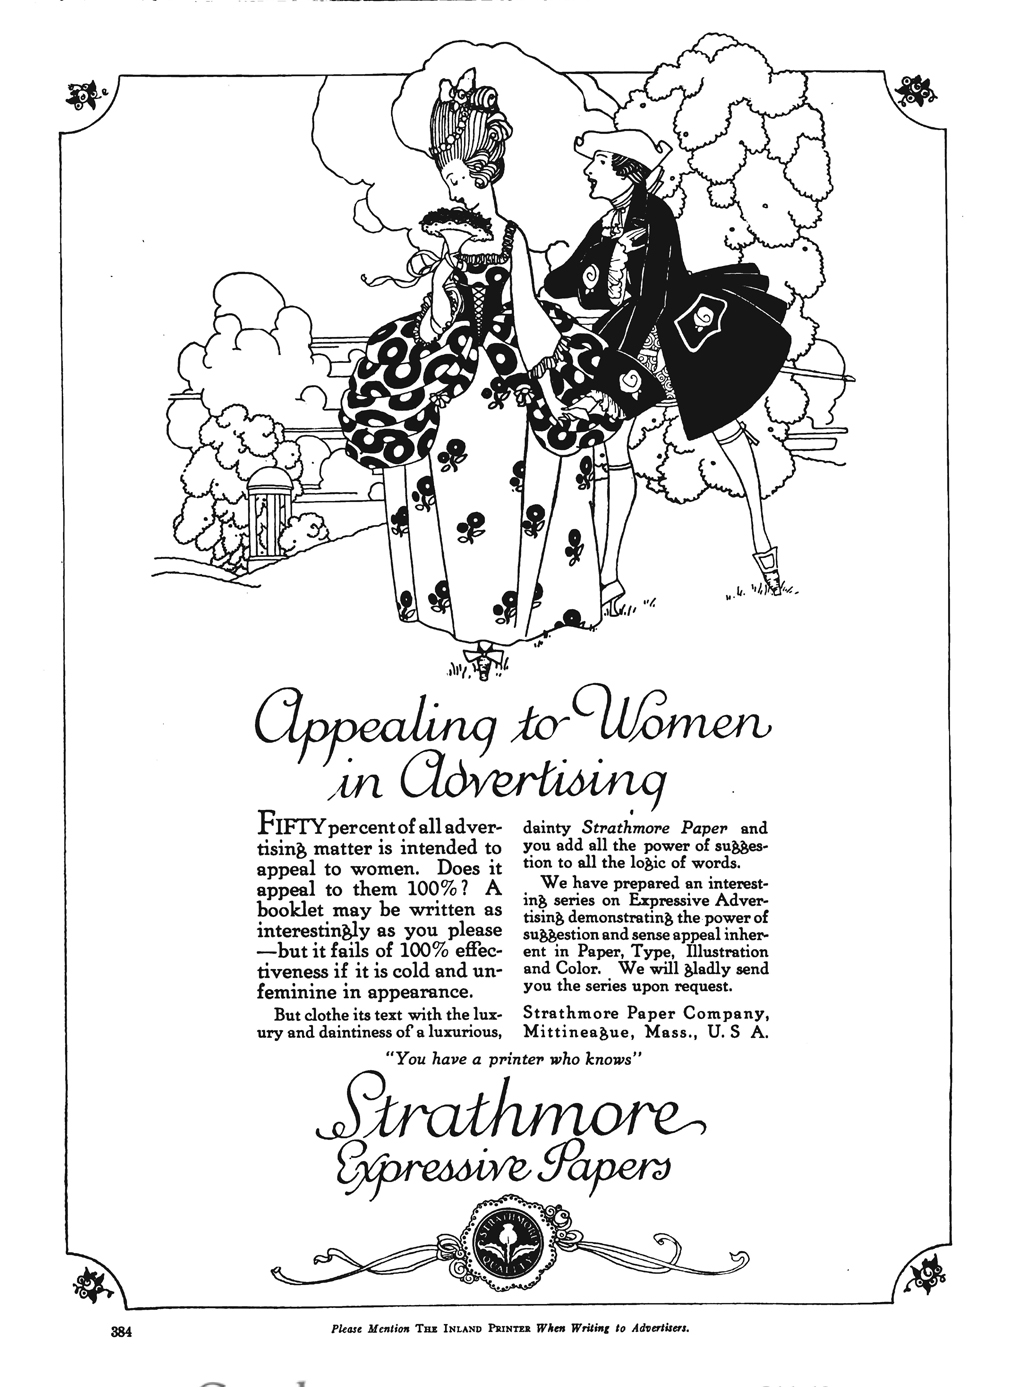 """Appealing to Women in Advertising"" advertisement in The Inland Printer vol. 66, no. 5 (January 1921)."